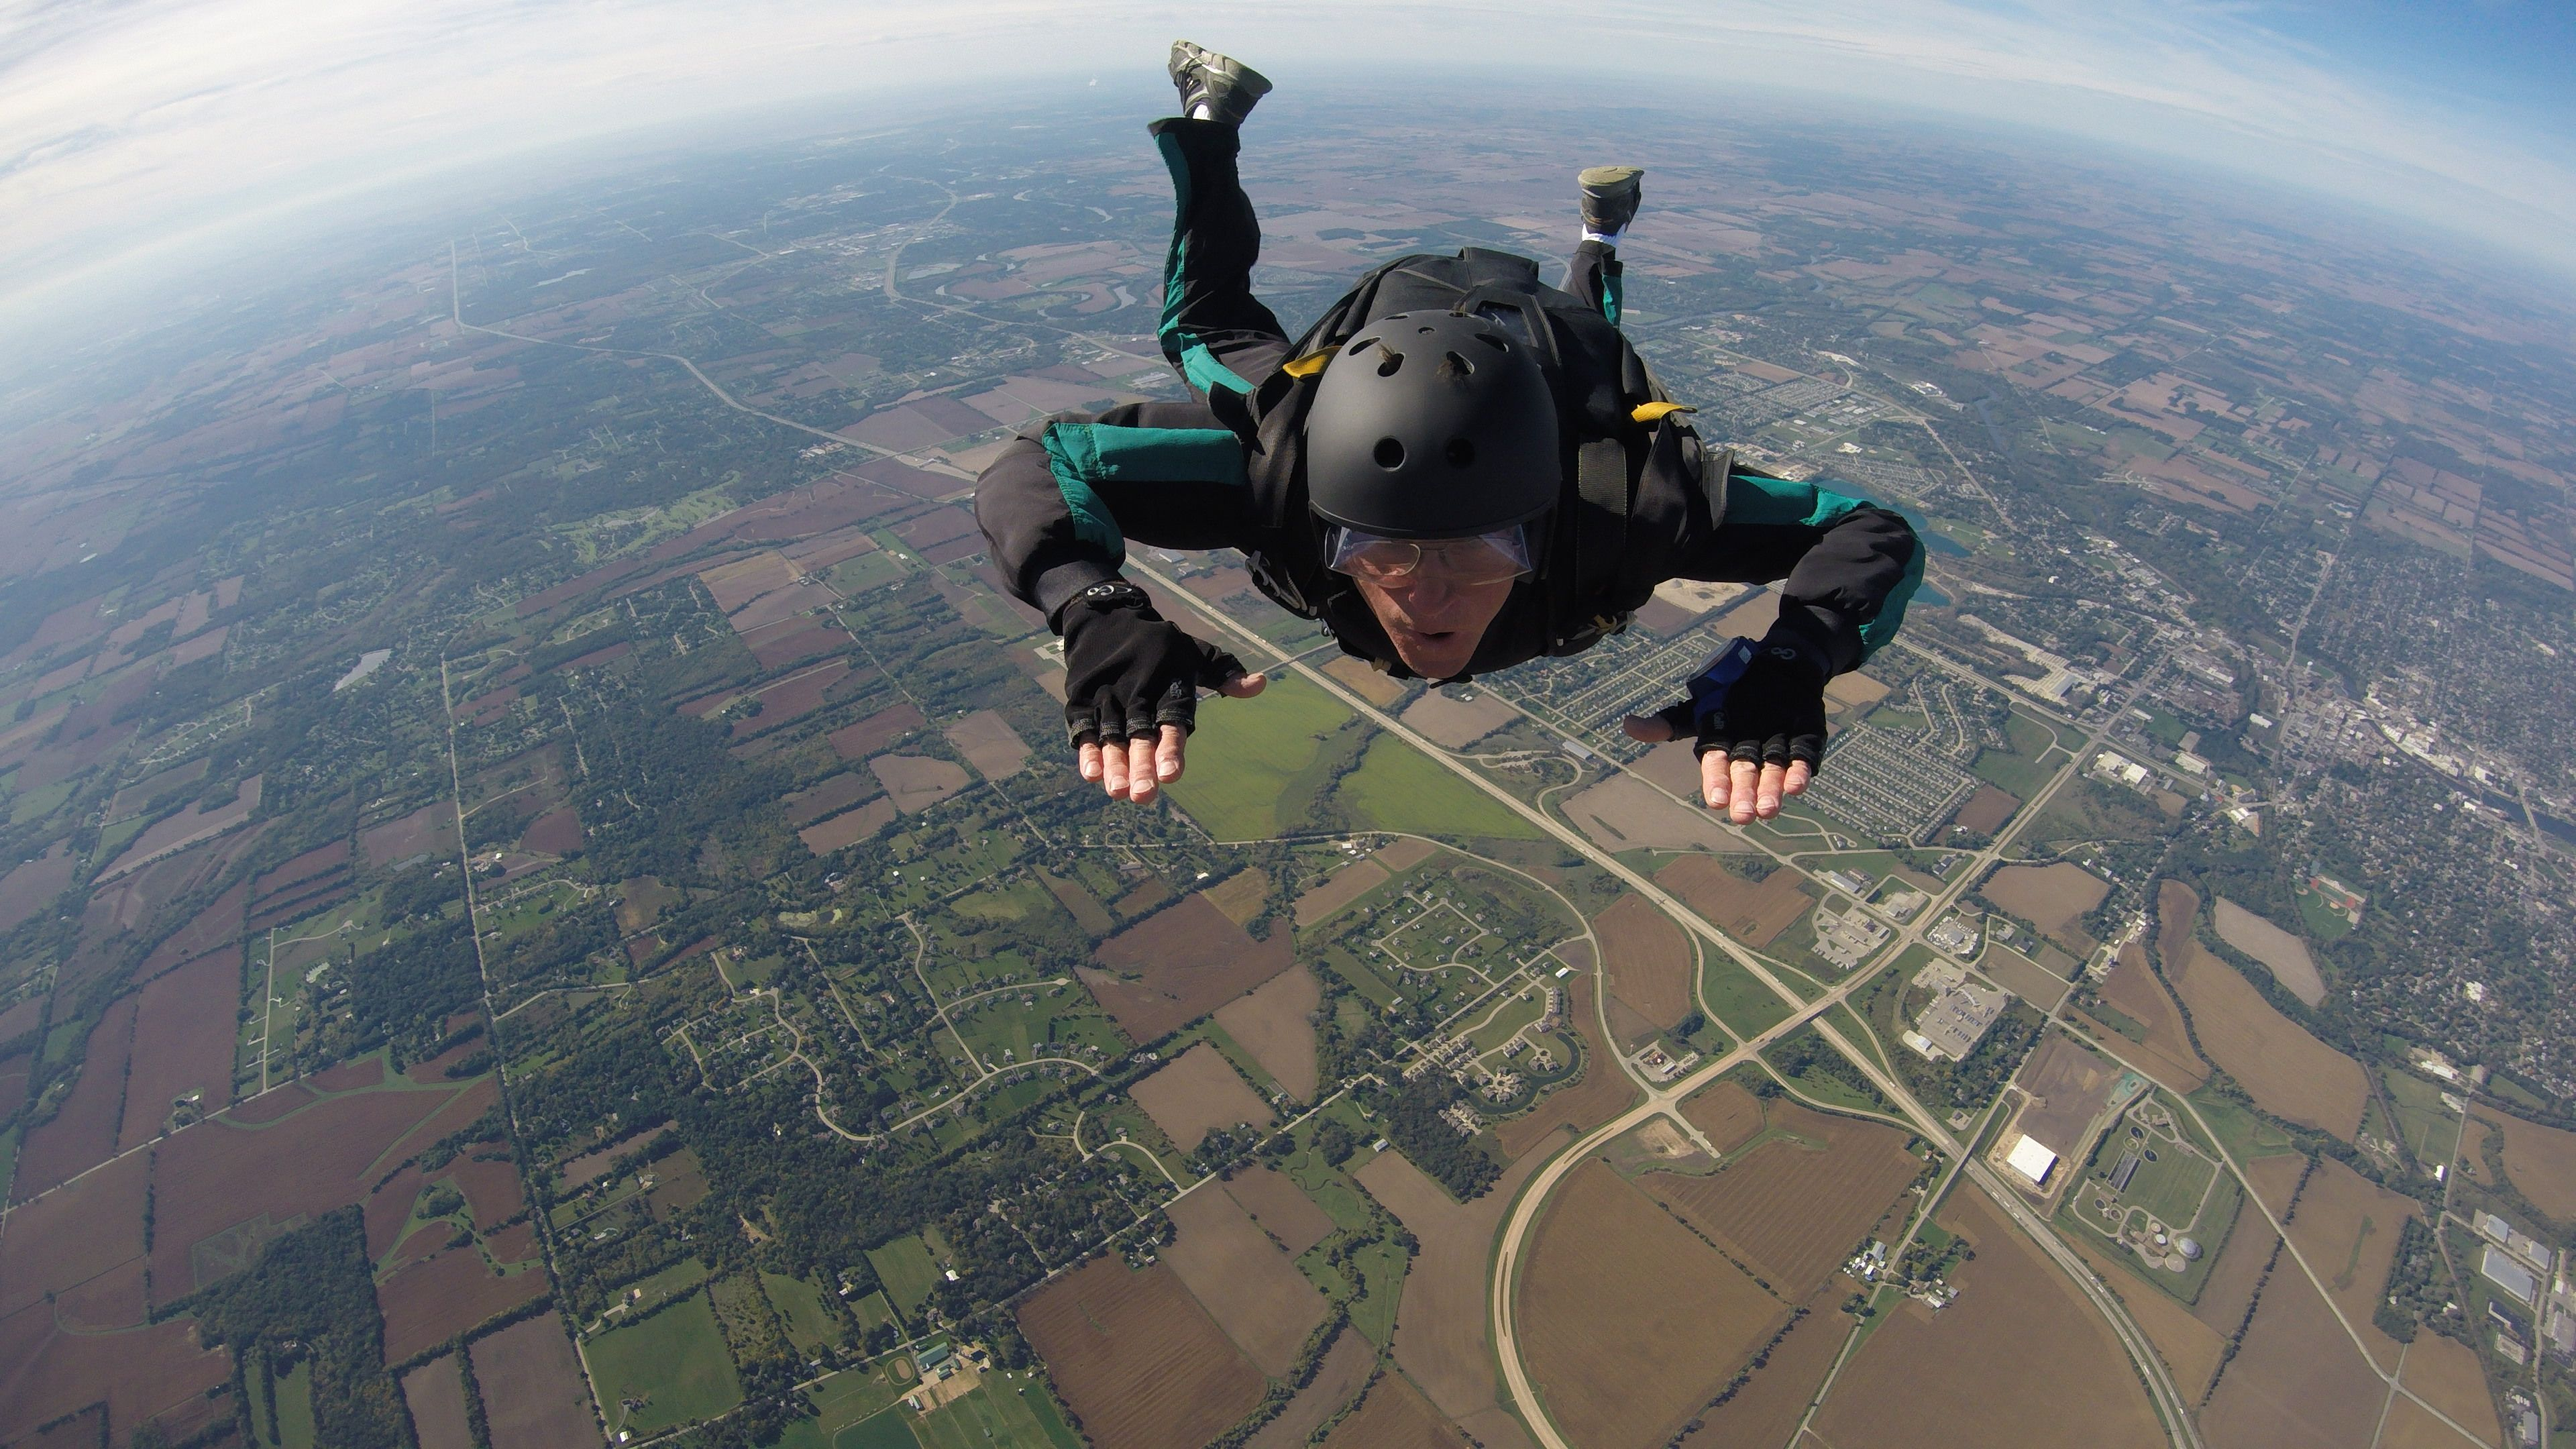 Roger Peters aka Pete doing a solo training skydive from